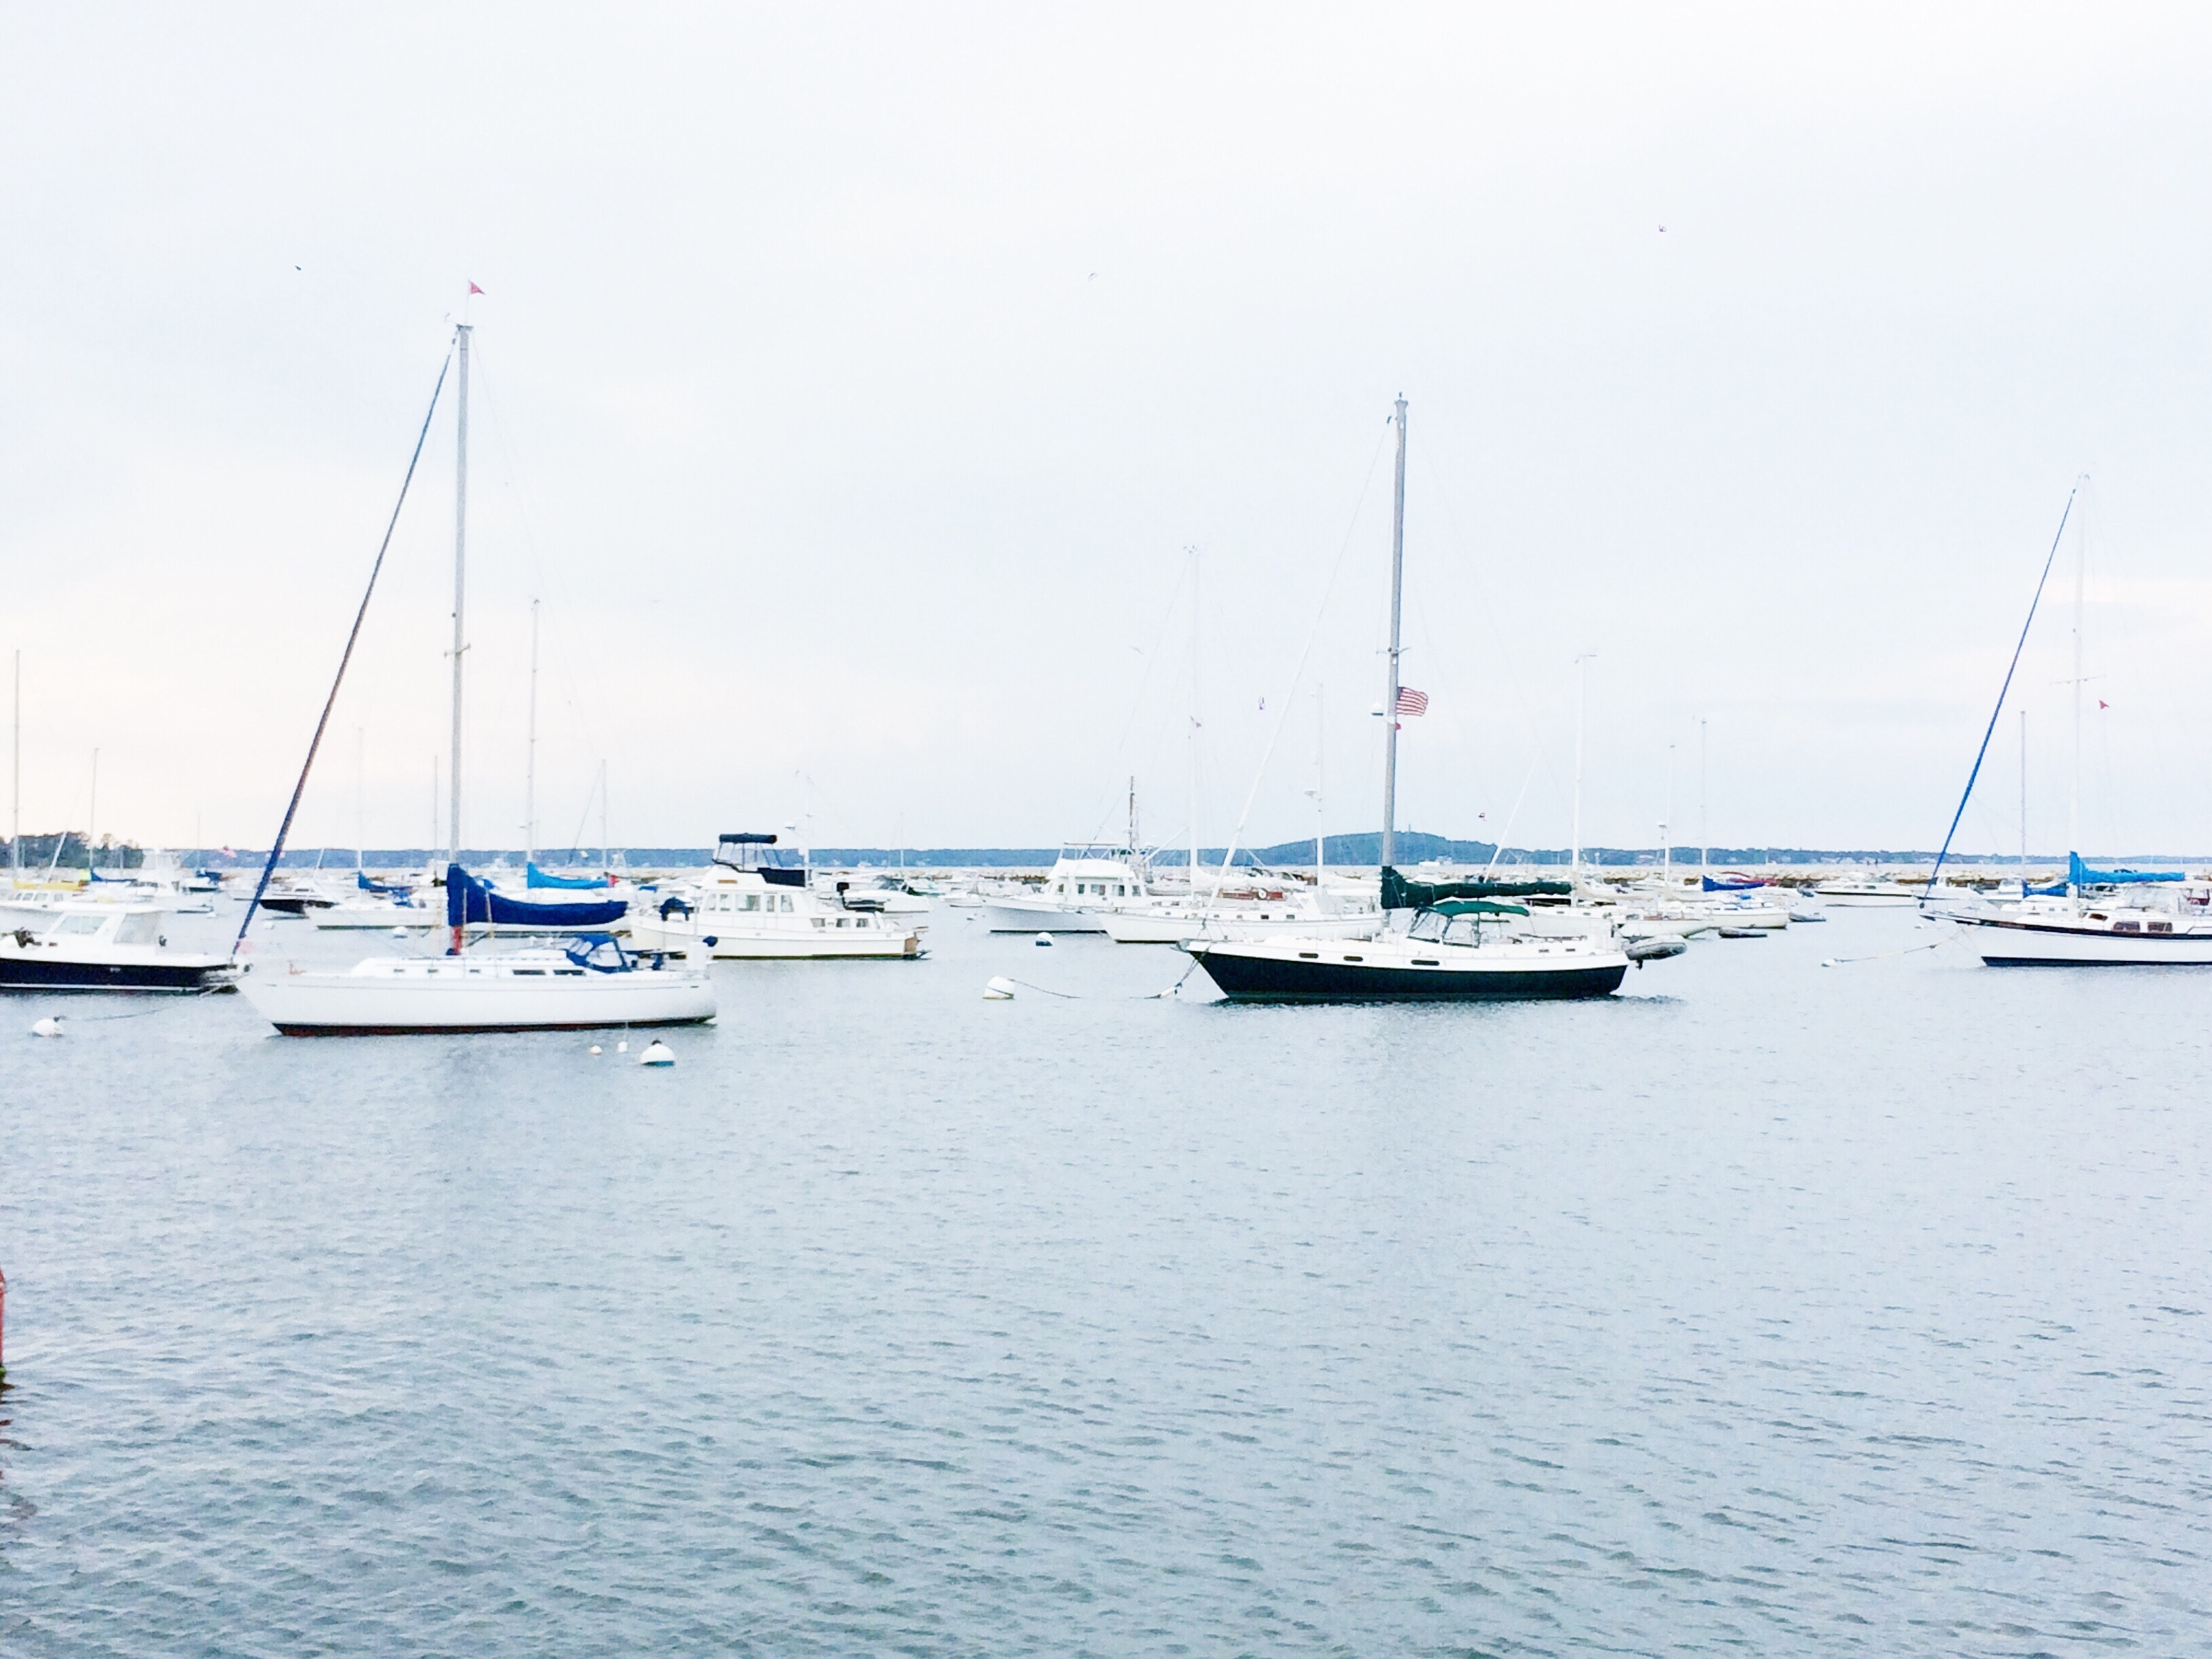 Photography of sailboats in the sea